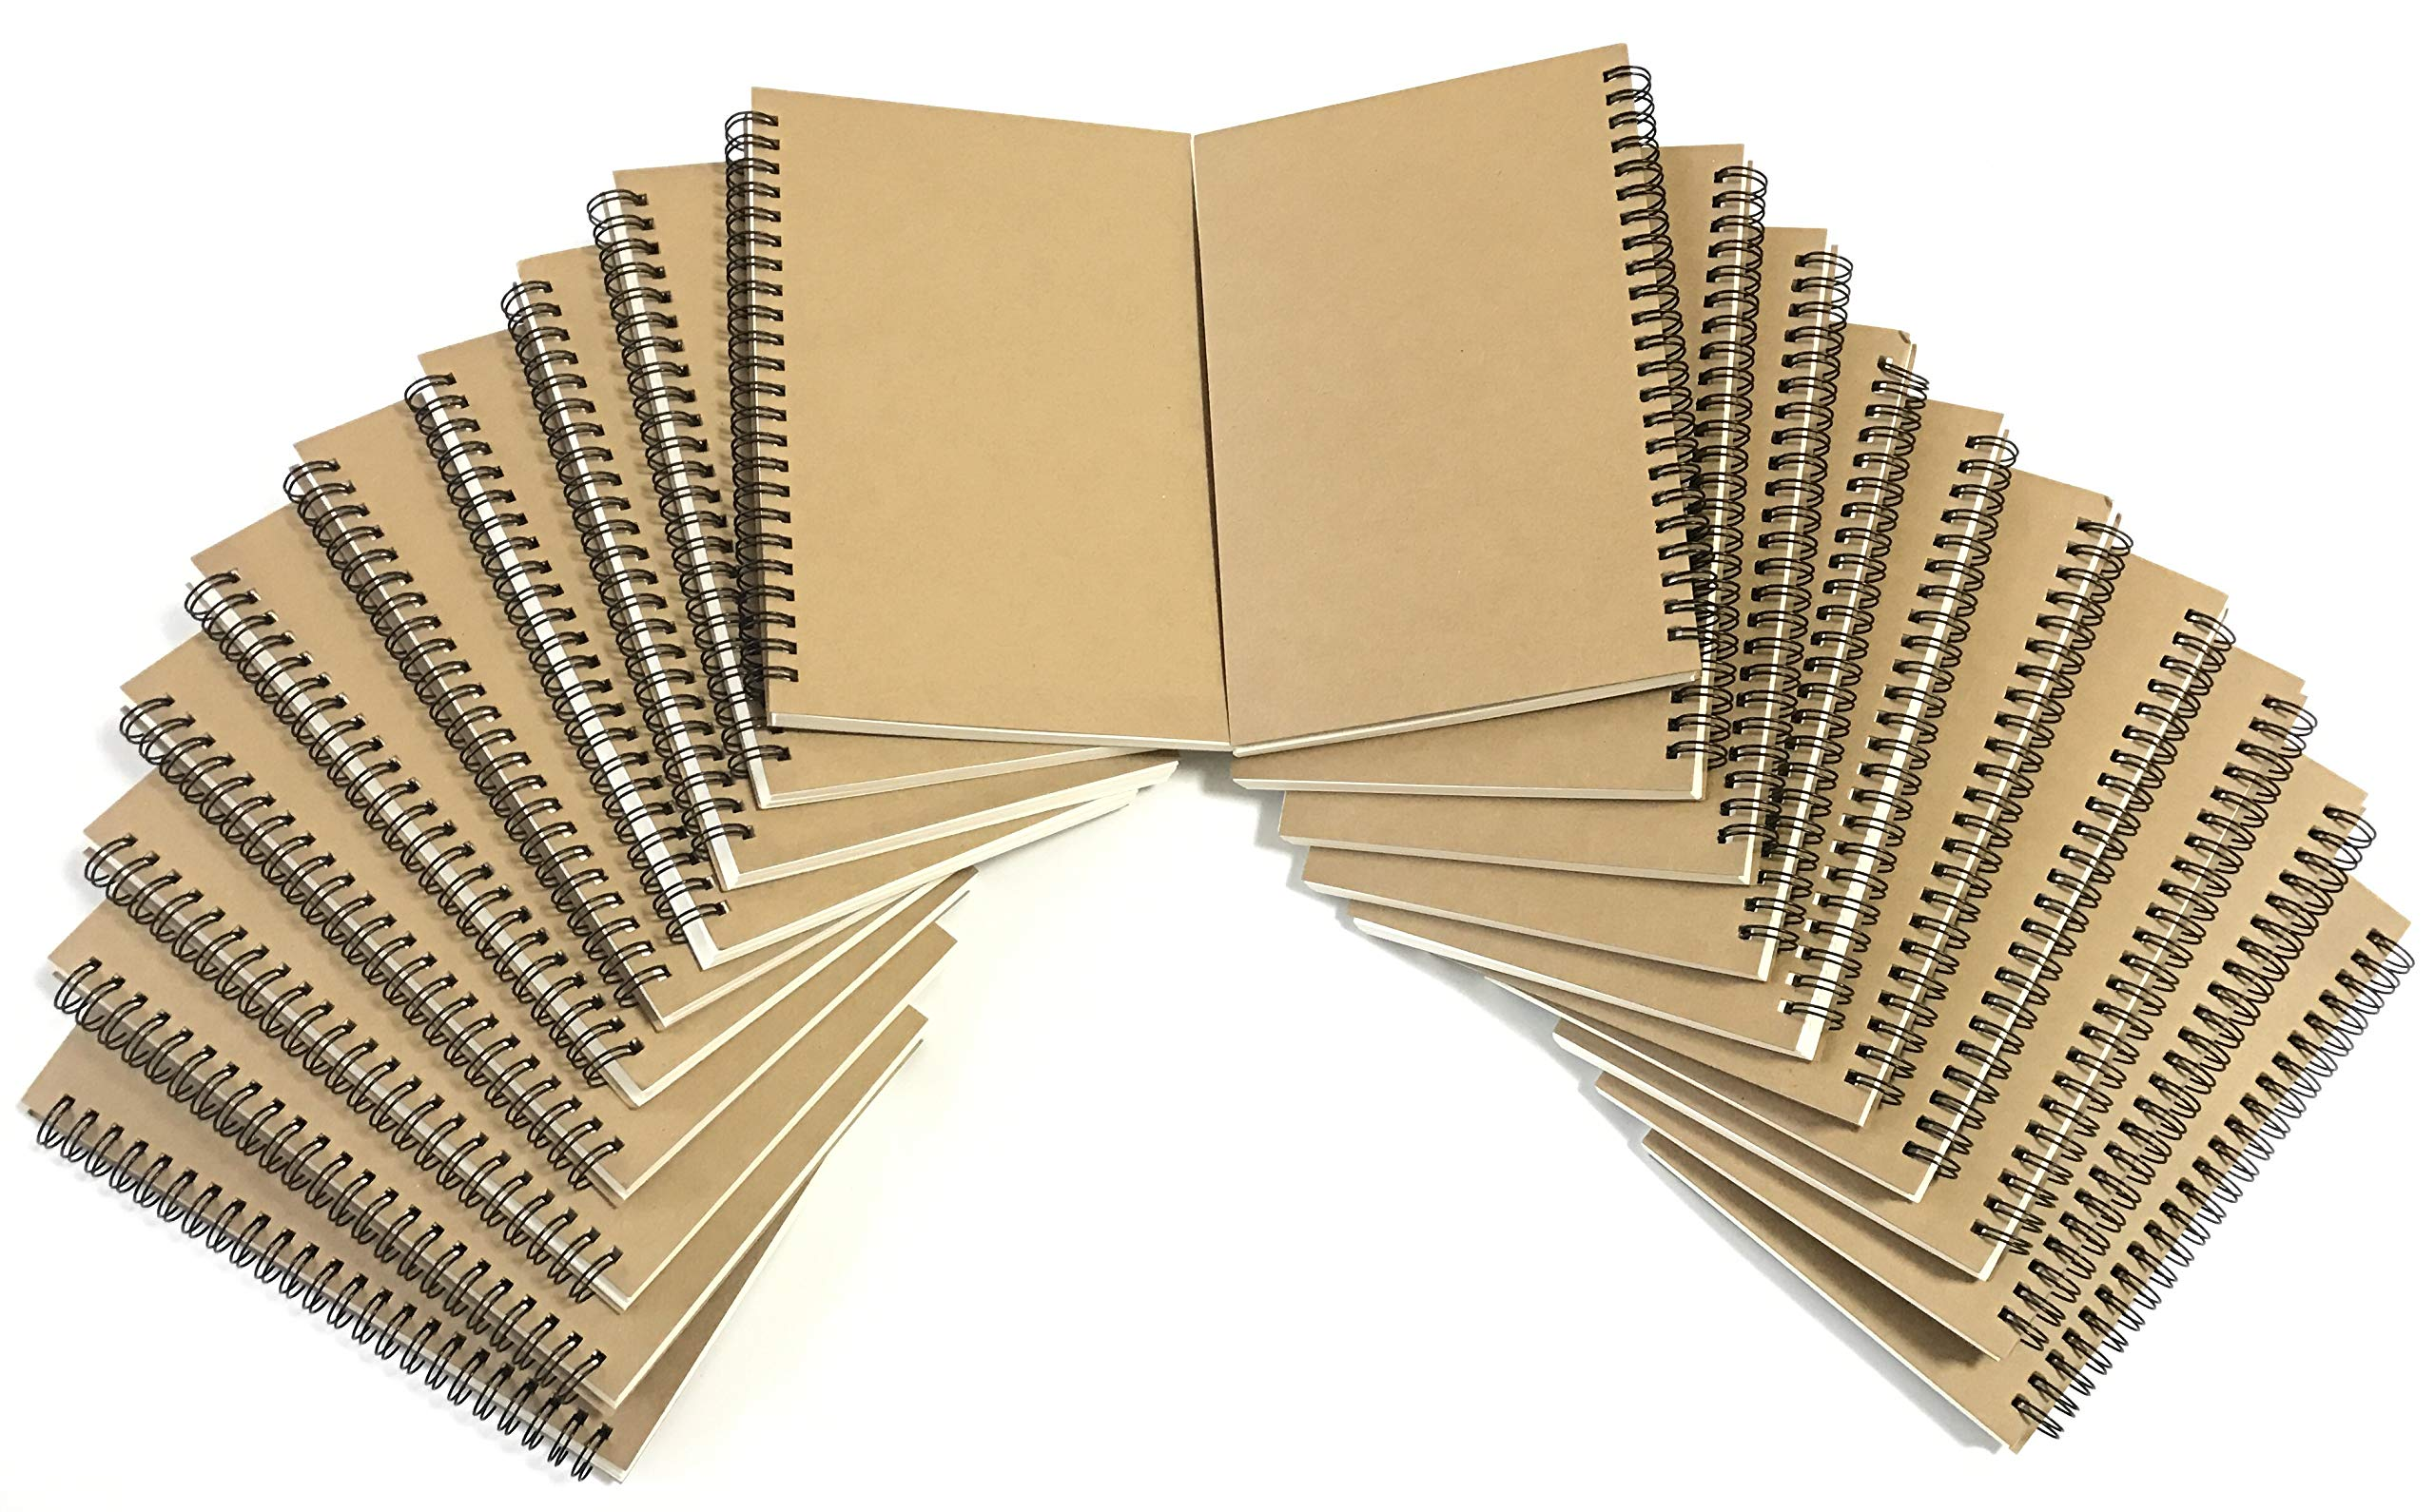 VEEPPO A5 Wirebound Notebooks Bulk Journals Spiral Steno Pads Blank/Lined Kraft Brown Cardboard Cover Thick Cream Writing Pad Sketchbook Scrapbook Album (Blank White-Pack of 20) by VEEPPO